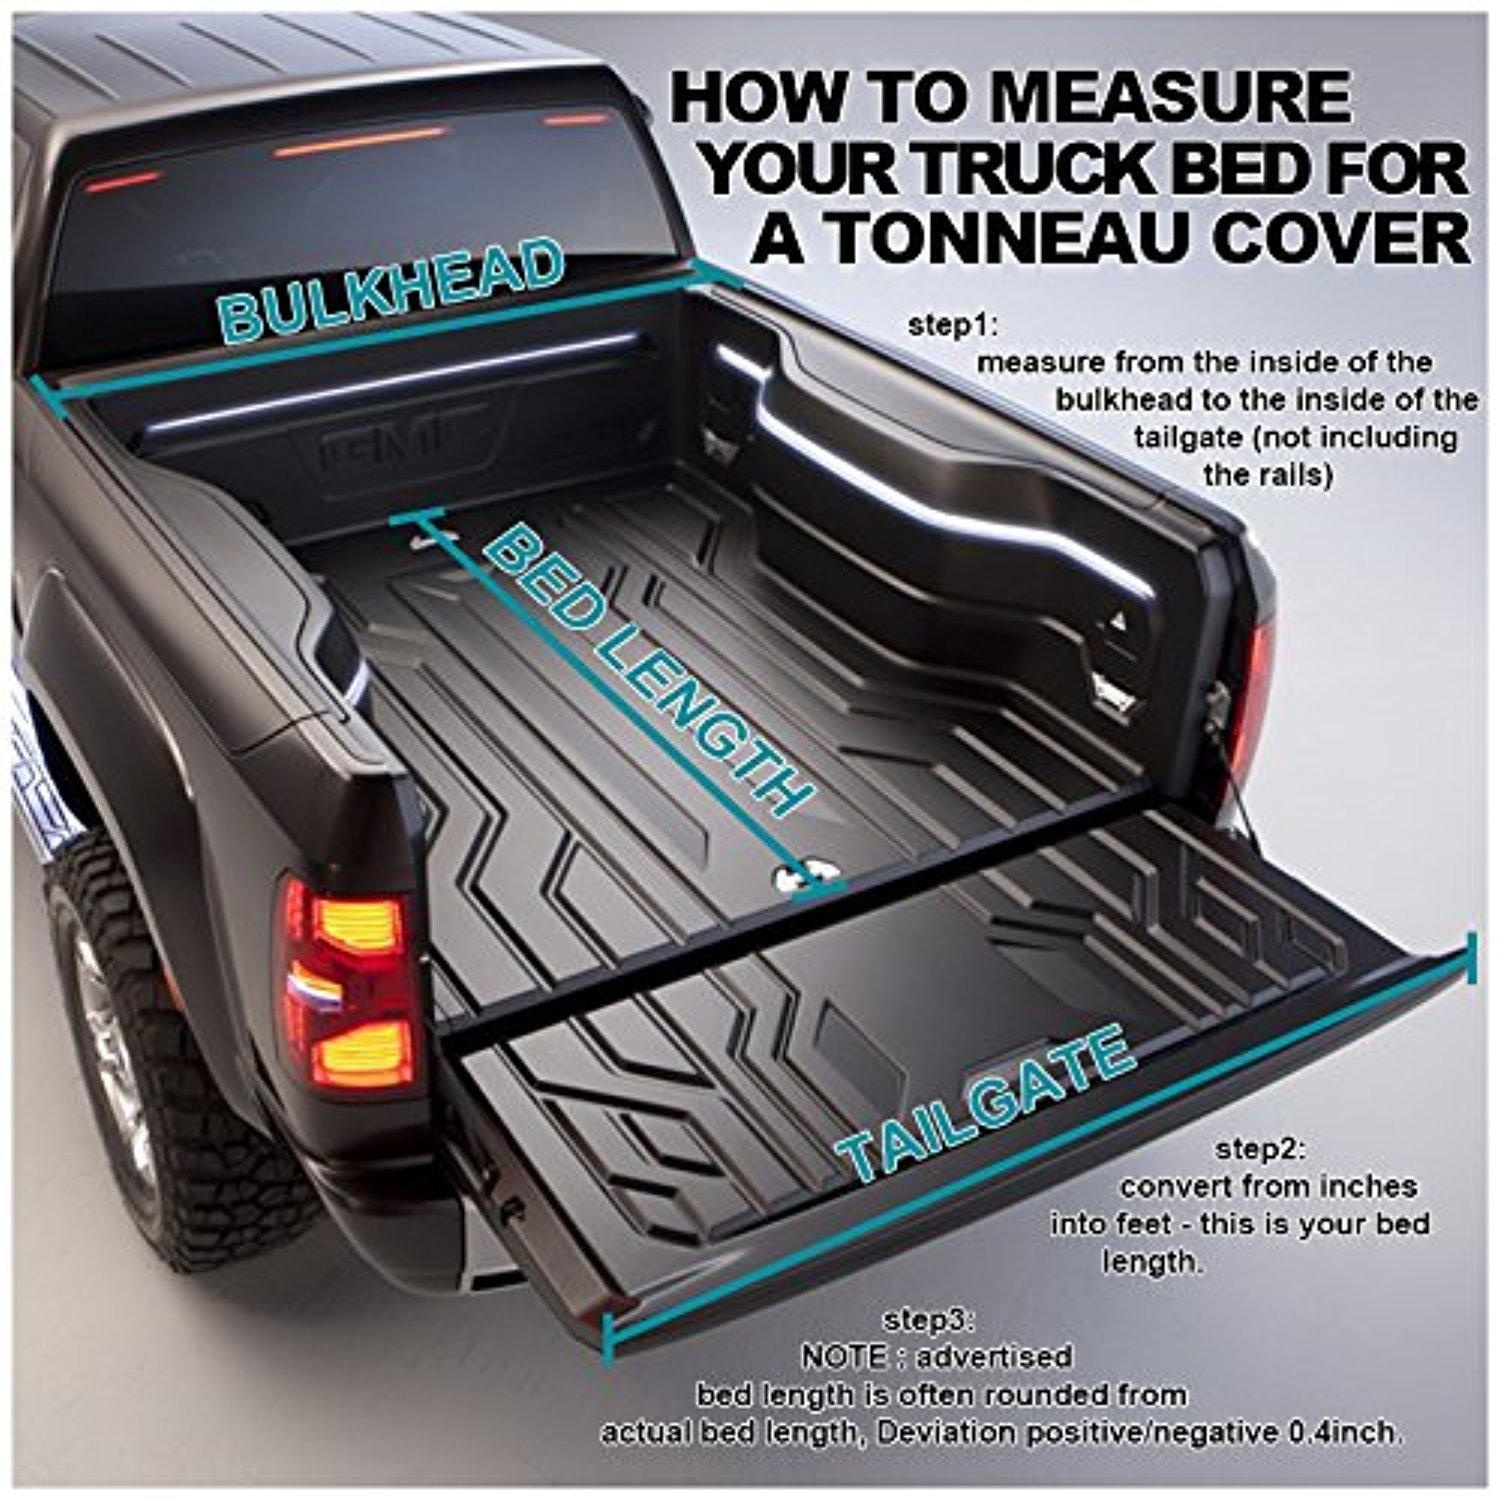 approved duty tacoma texas uncategorized real woodlands for toyota tundra looking flip cover ford bak truckworks in if covers the on world your super bed a by texastruckworks tested ttw g